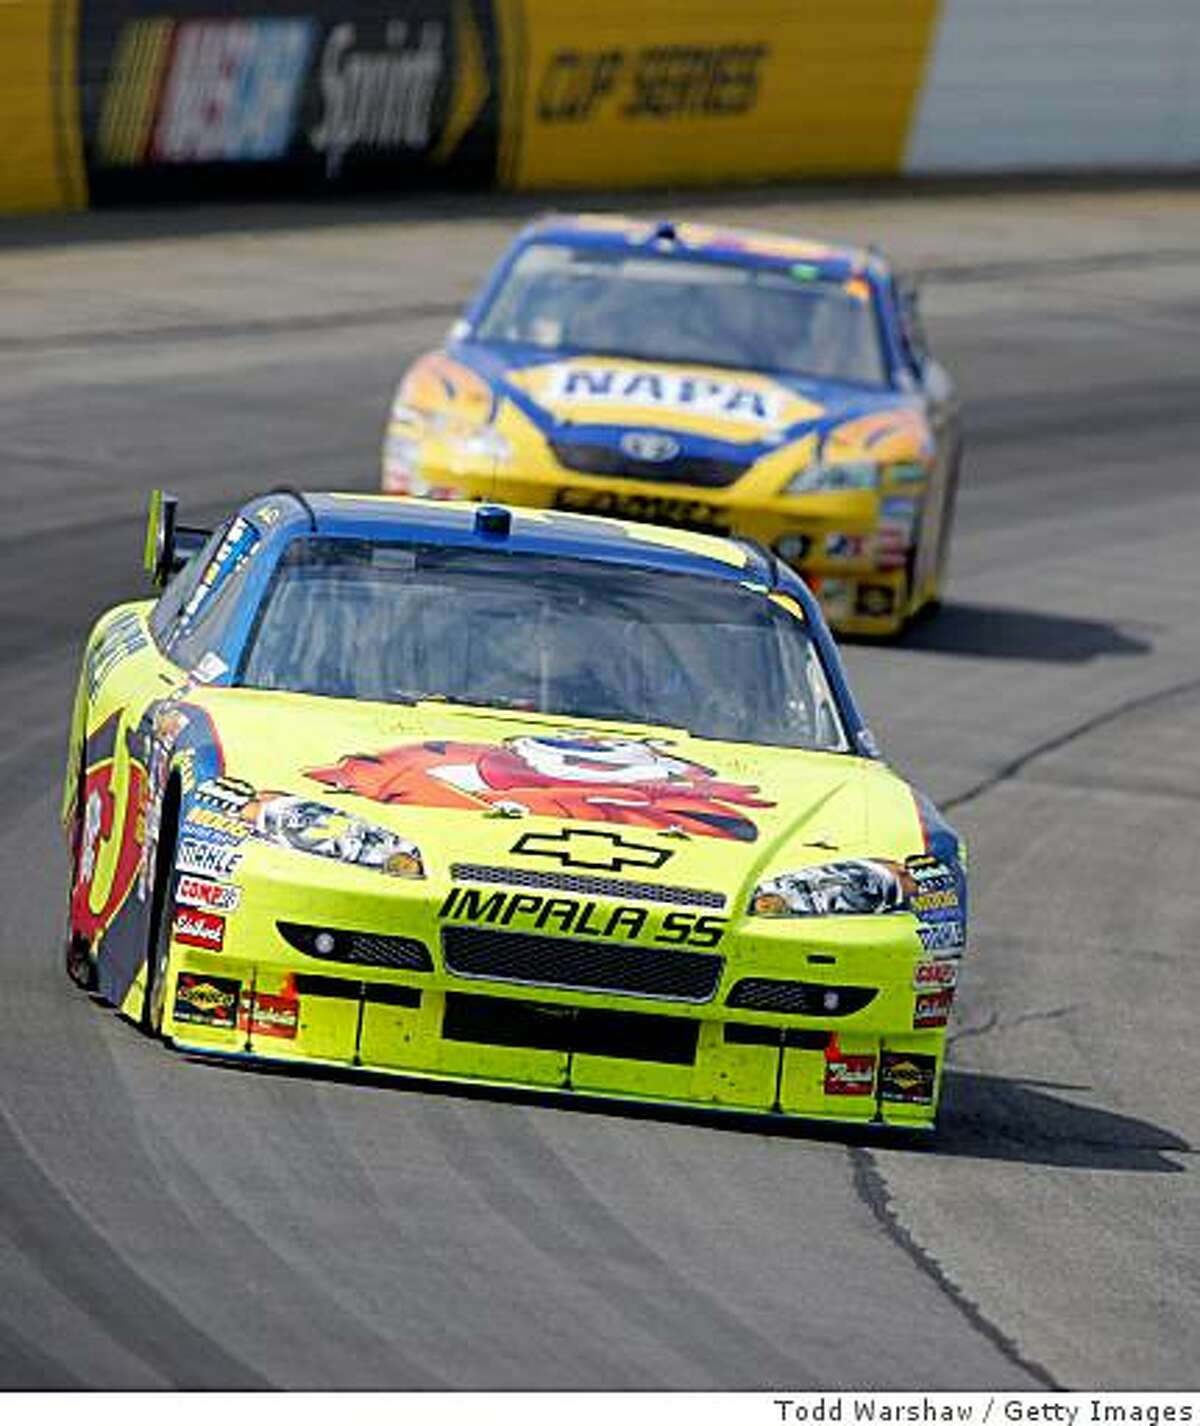 LONG POND, PA - JUNE 07: Mark Martin, driver of the #5 Kellogg's/CARQUEST Chevrolet, leads Michael Waltrip, driver of the #55 NAPA Toyota, during the NASCAR Sprint Cup Series Pocono 500 on June 7, 2009 at Pocono Raceway in Long Pond, Pennsylvania. (Photo by Todd Warshaw/Getty Images)